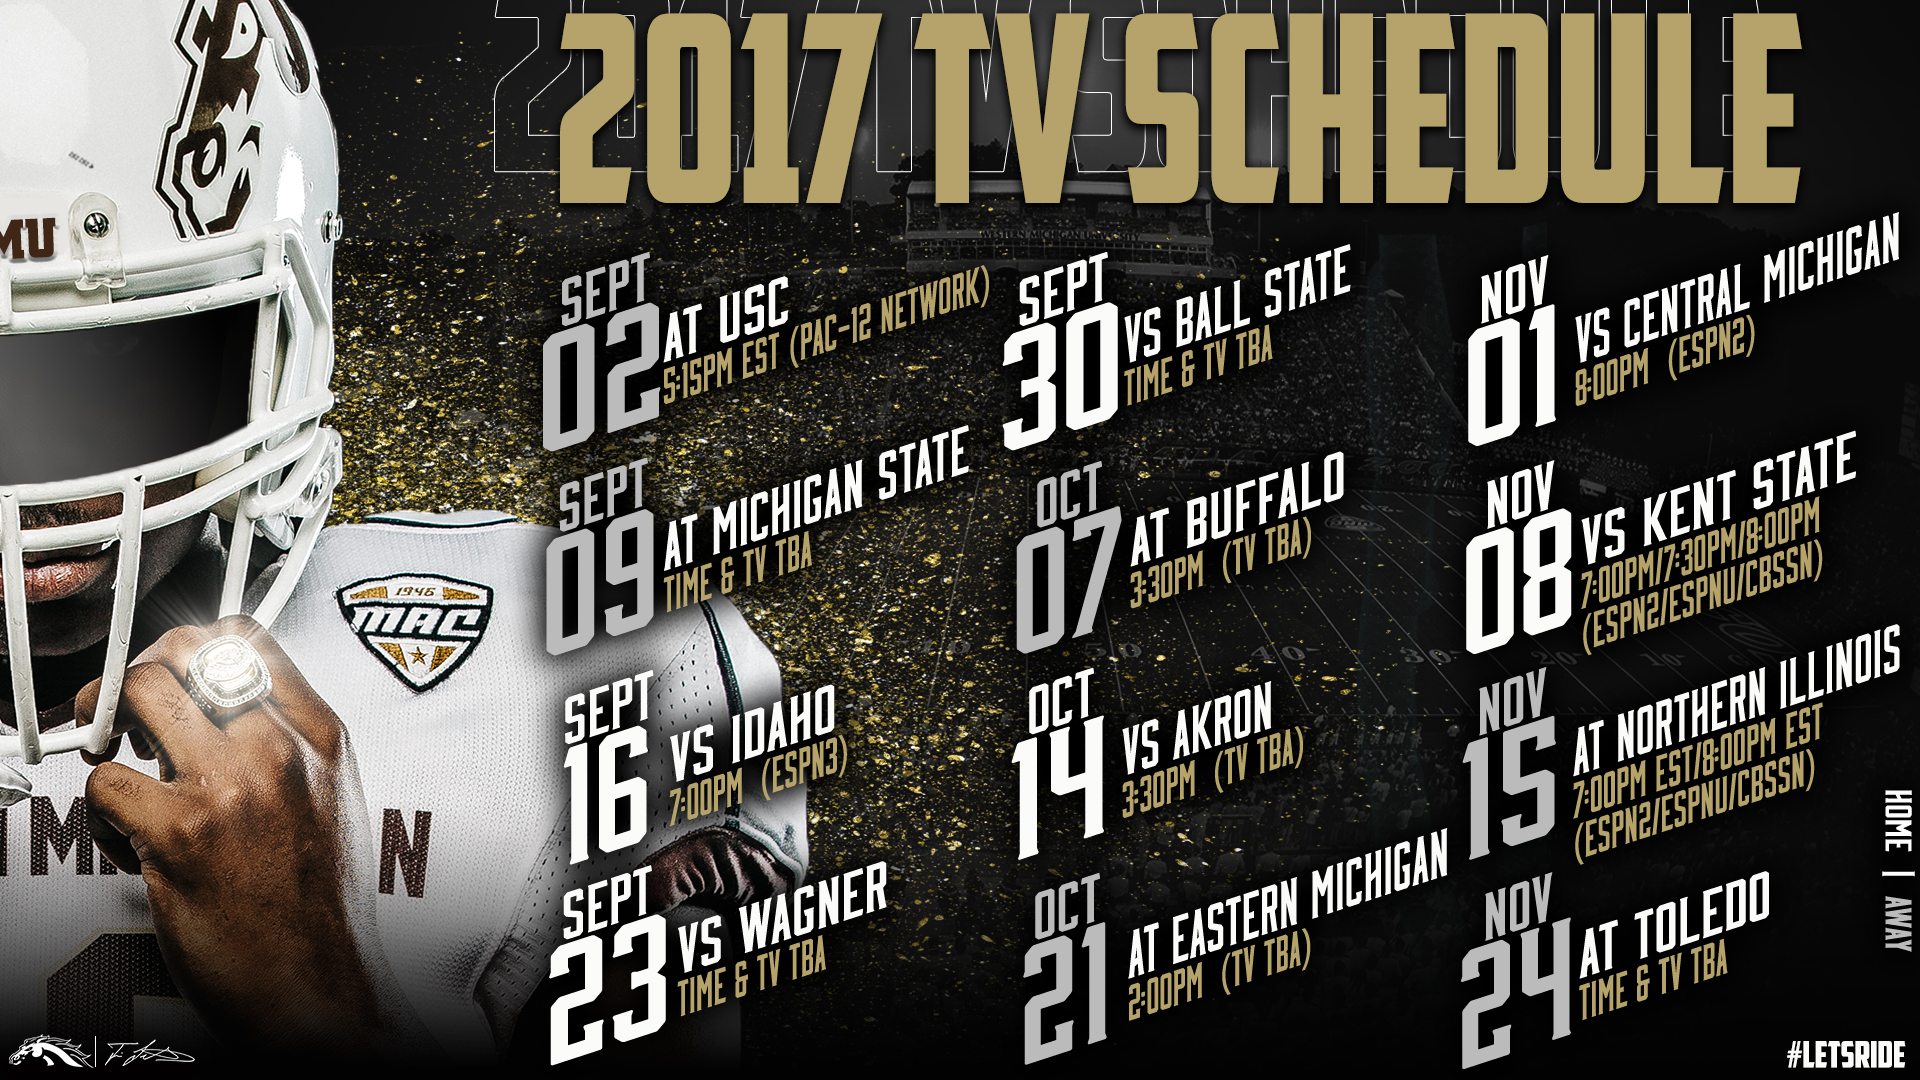 football has portion of game times announced for 2017 - western